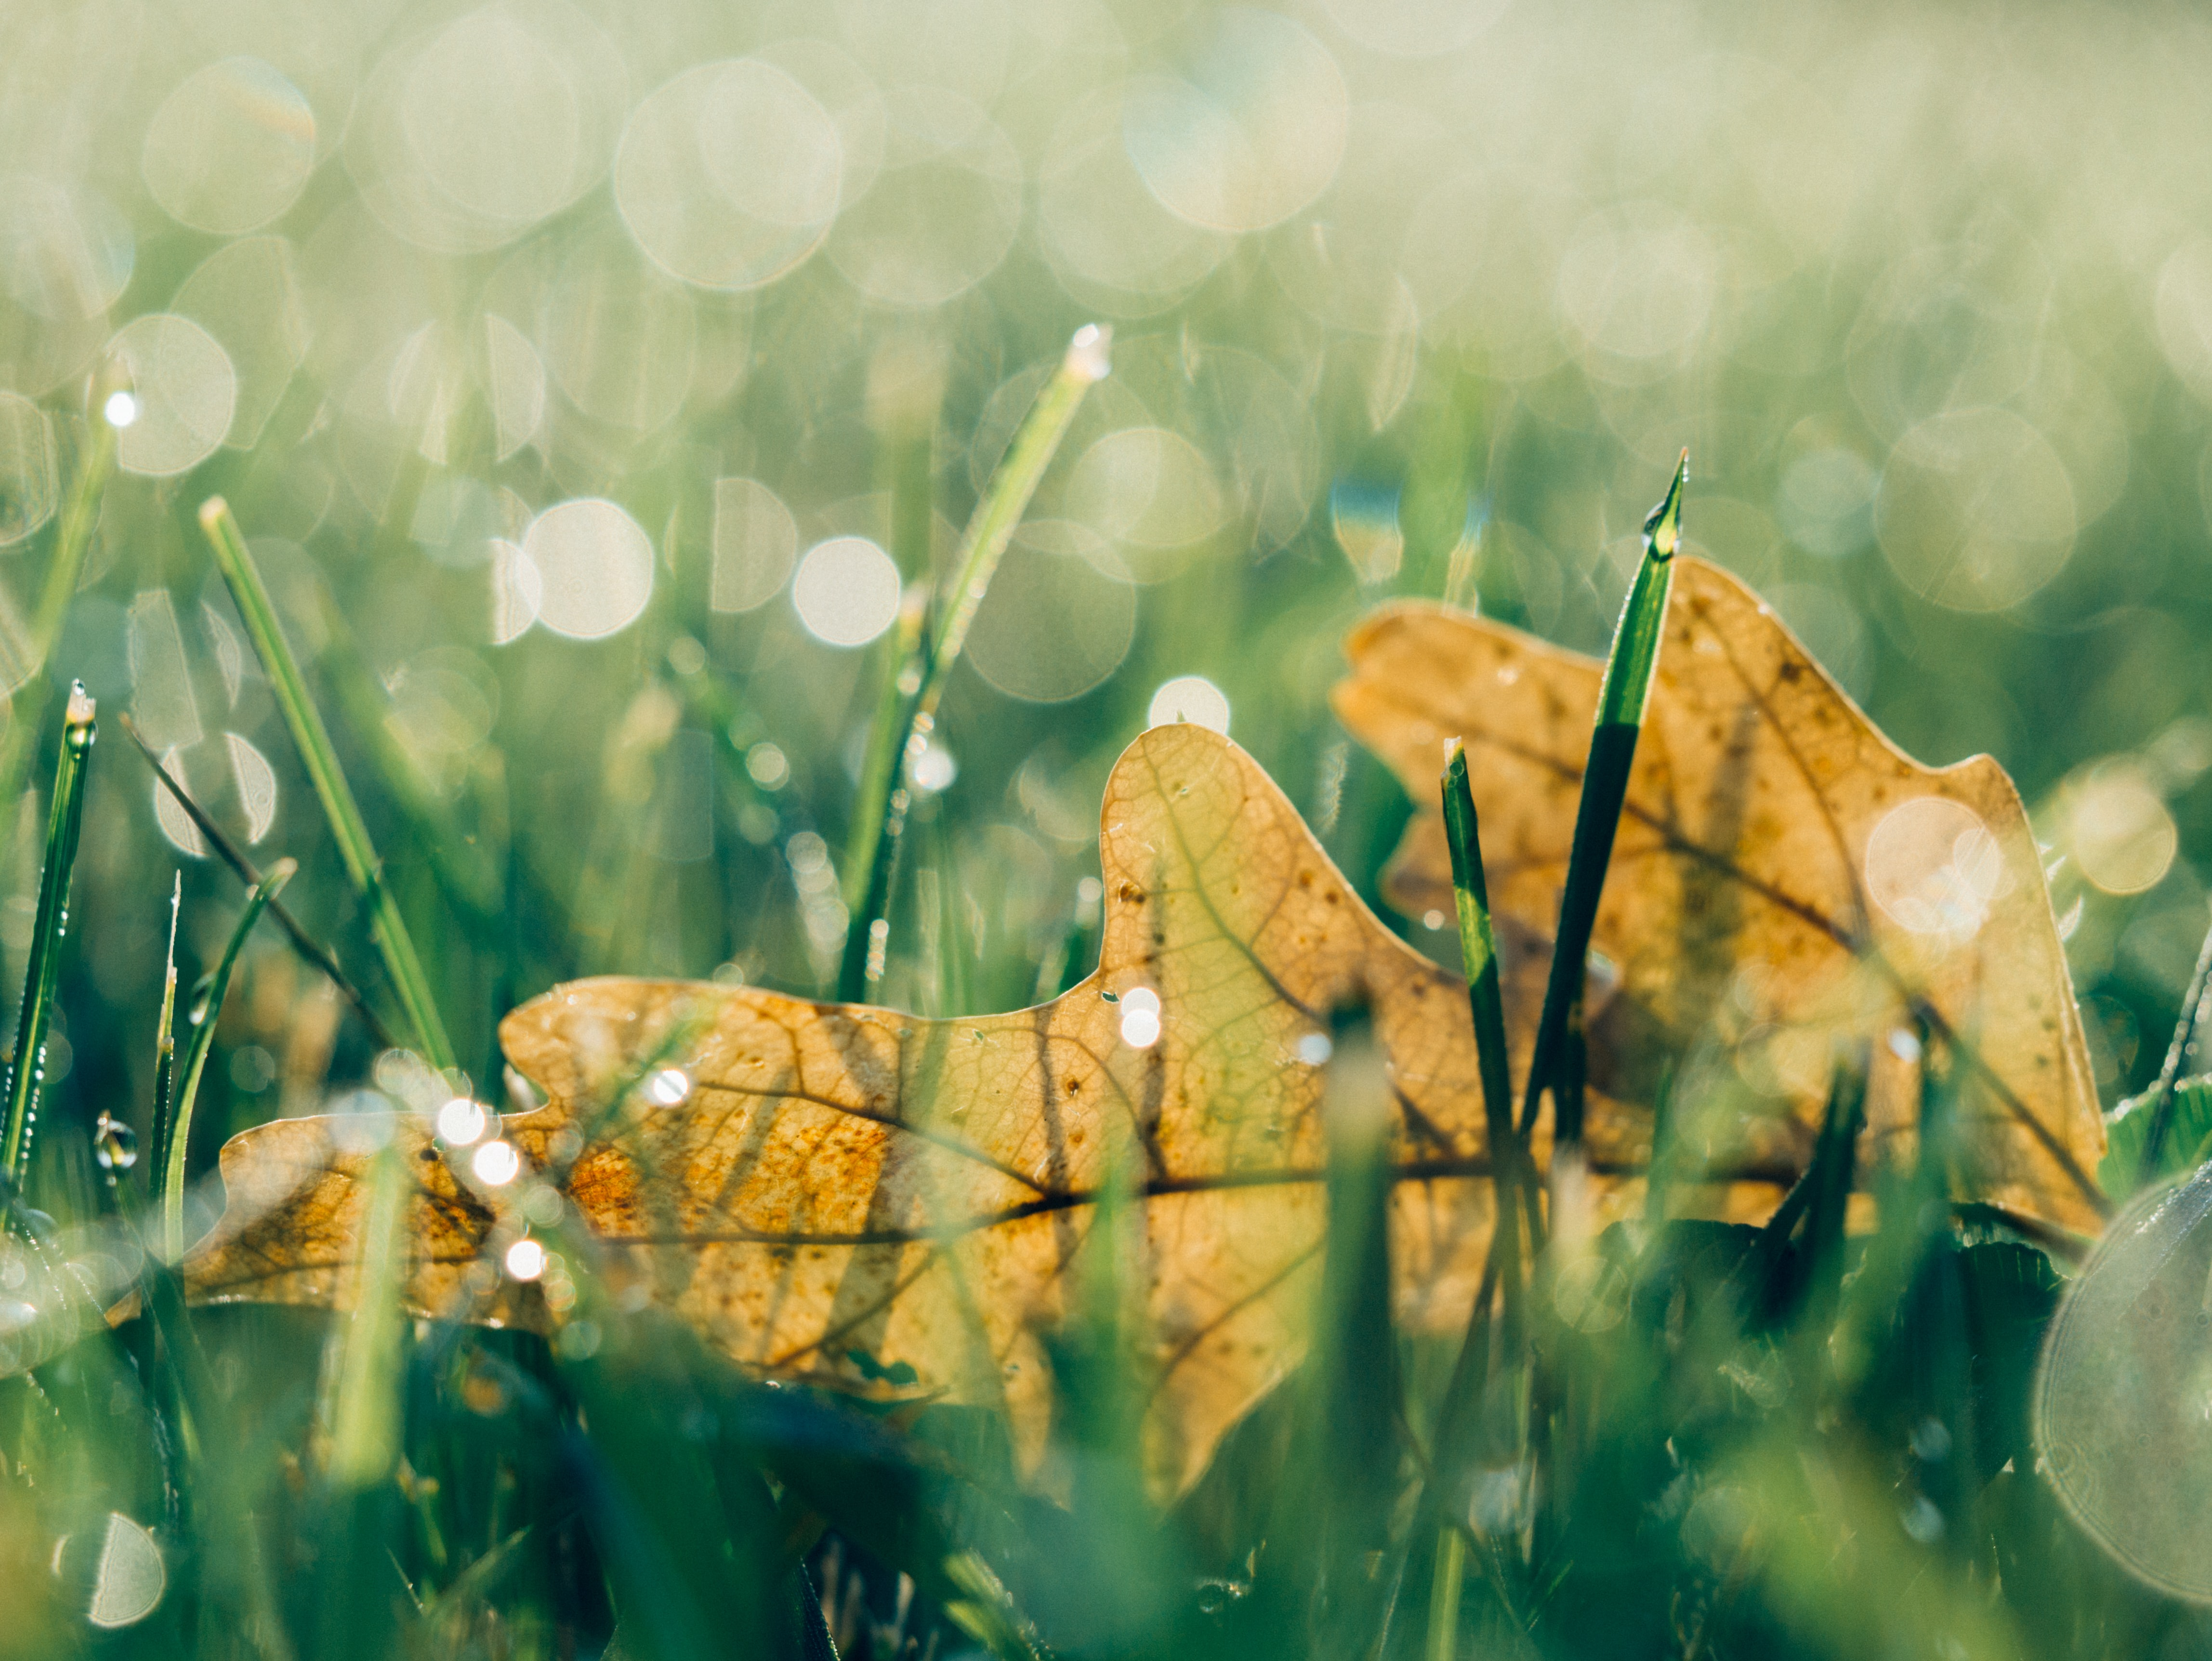 brown leaf fallen on green grass